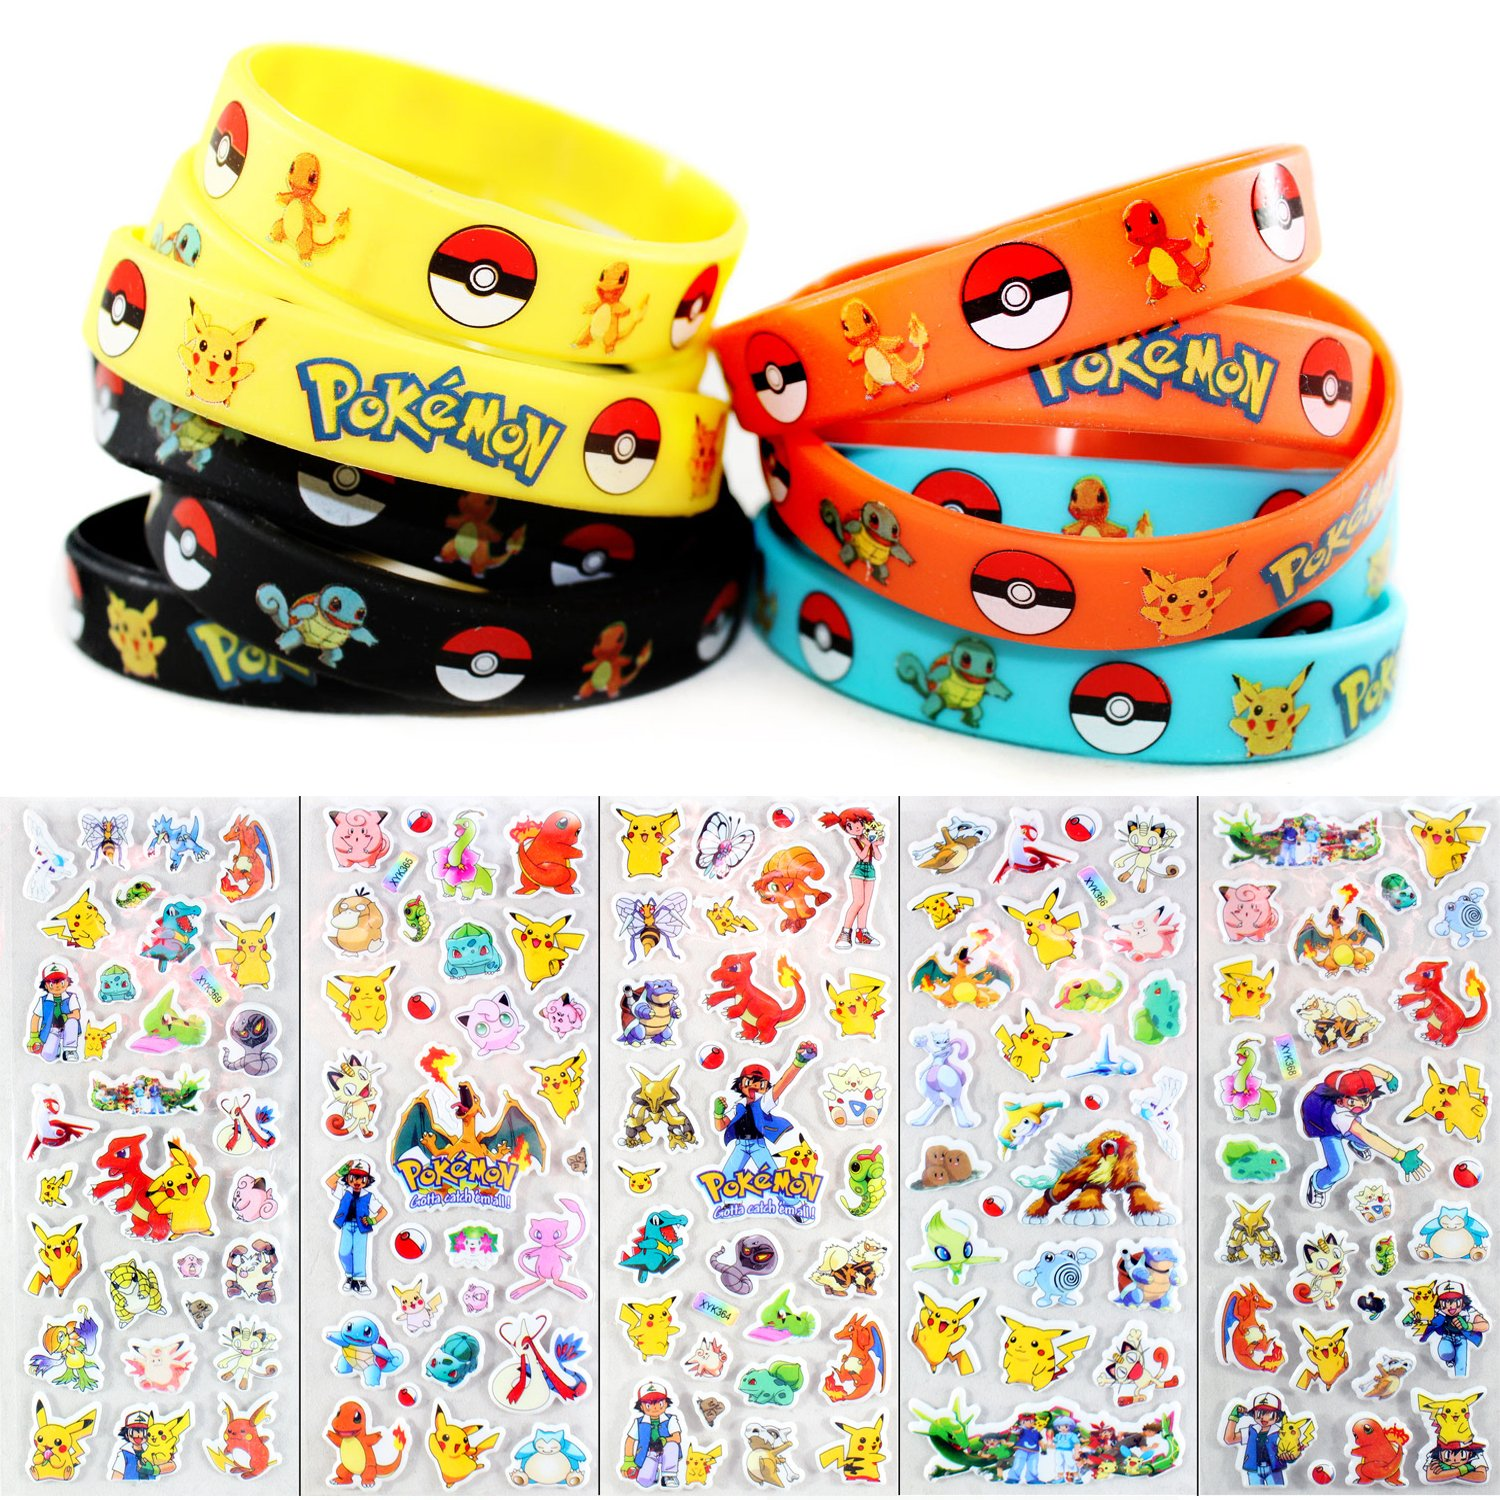 24 Pokemon Wrist Bands and Sticker Sheet - Colorful Bracelets And Assorted Stickers For Kids